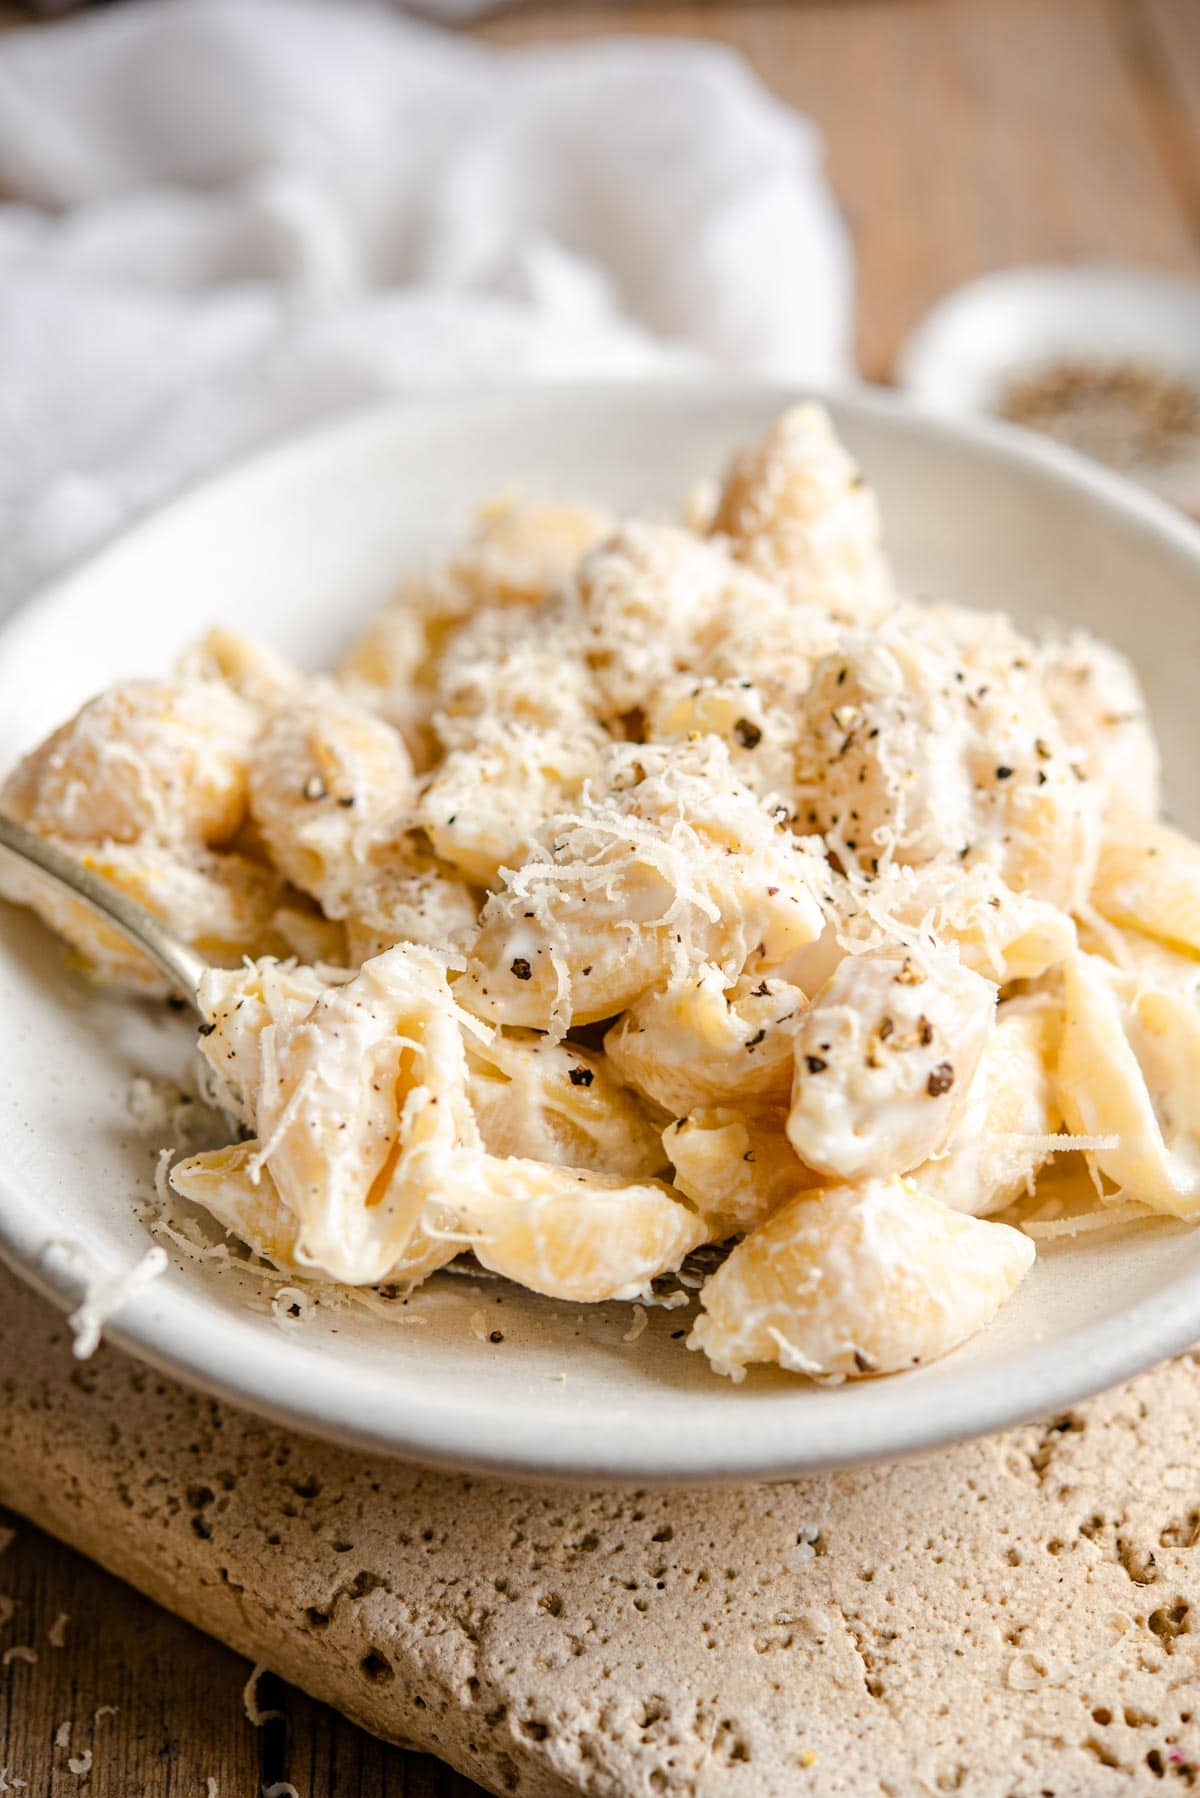 A side shot of pasta shells with a ricotta sauce in a ceramic bowl